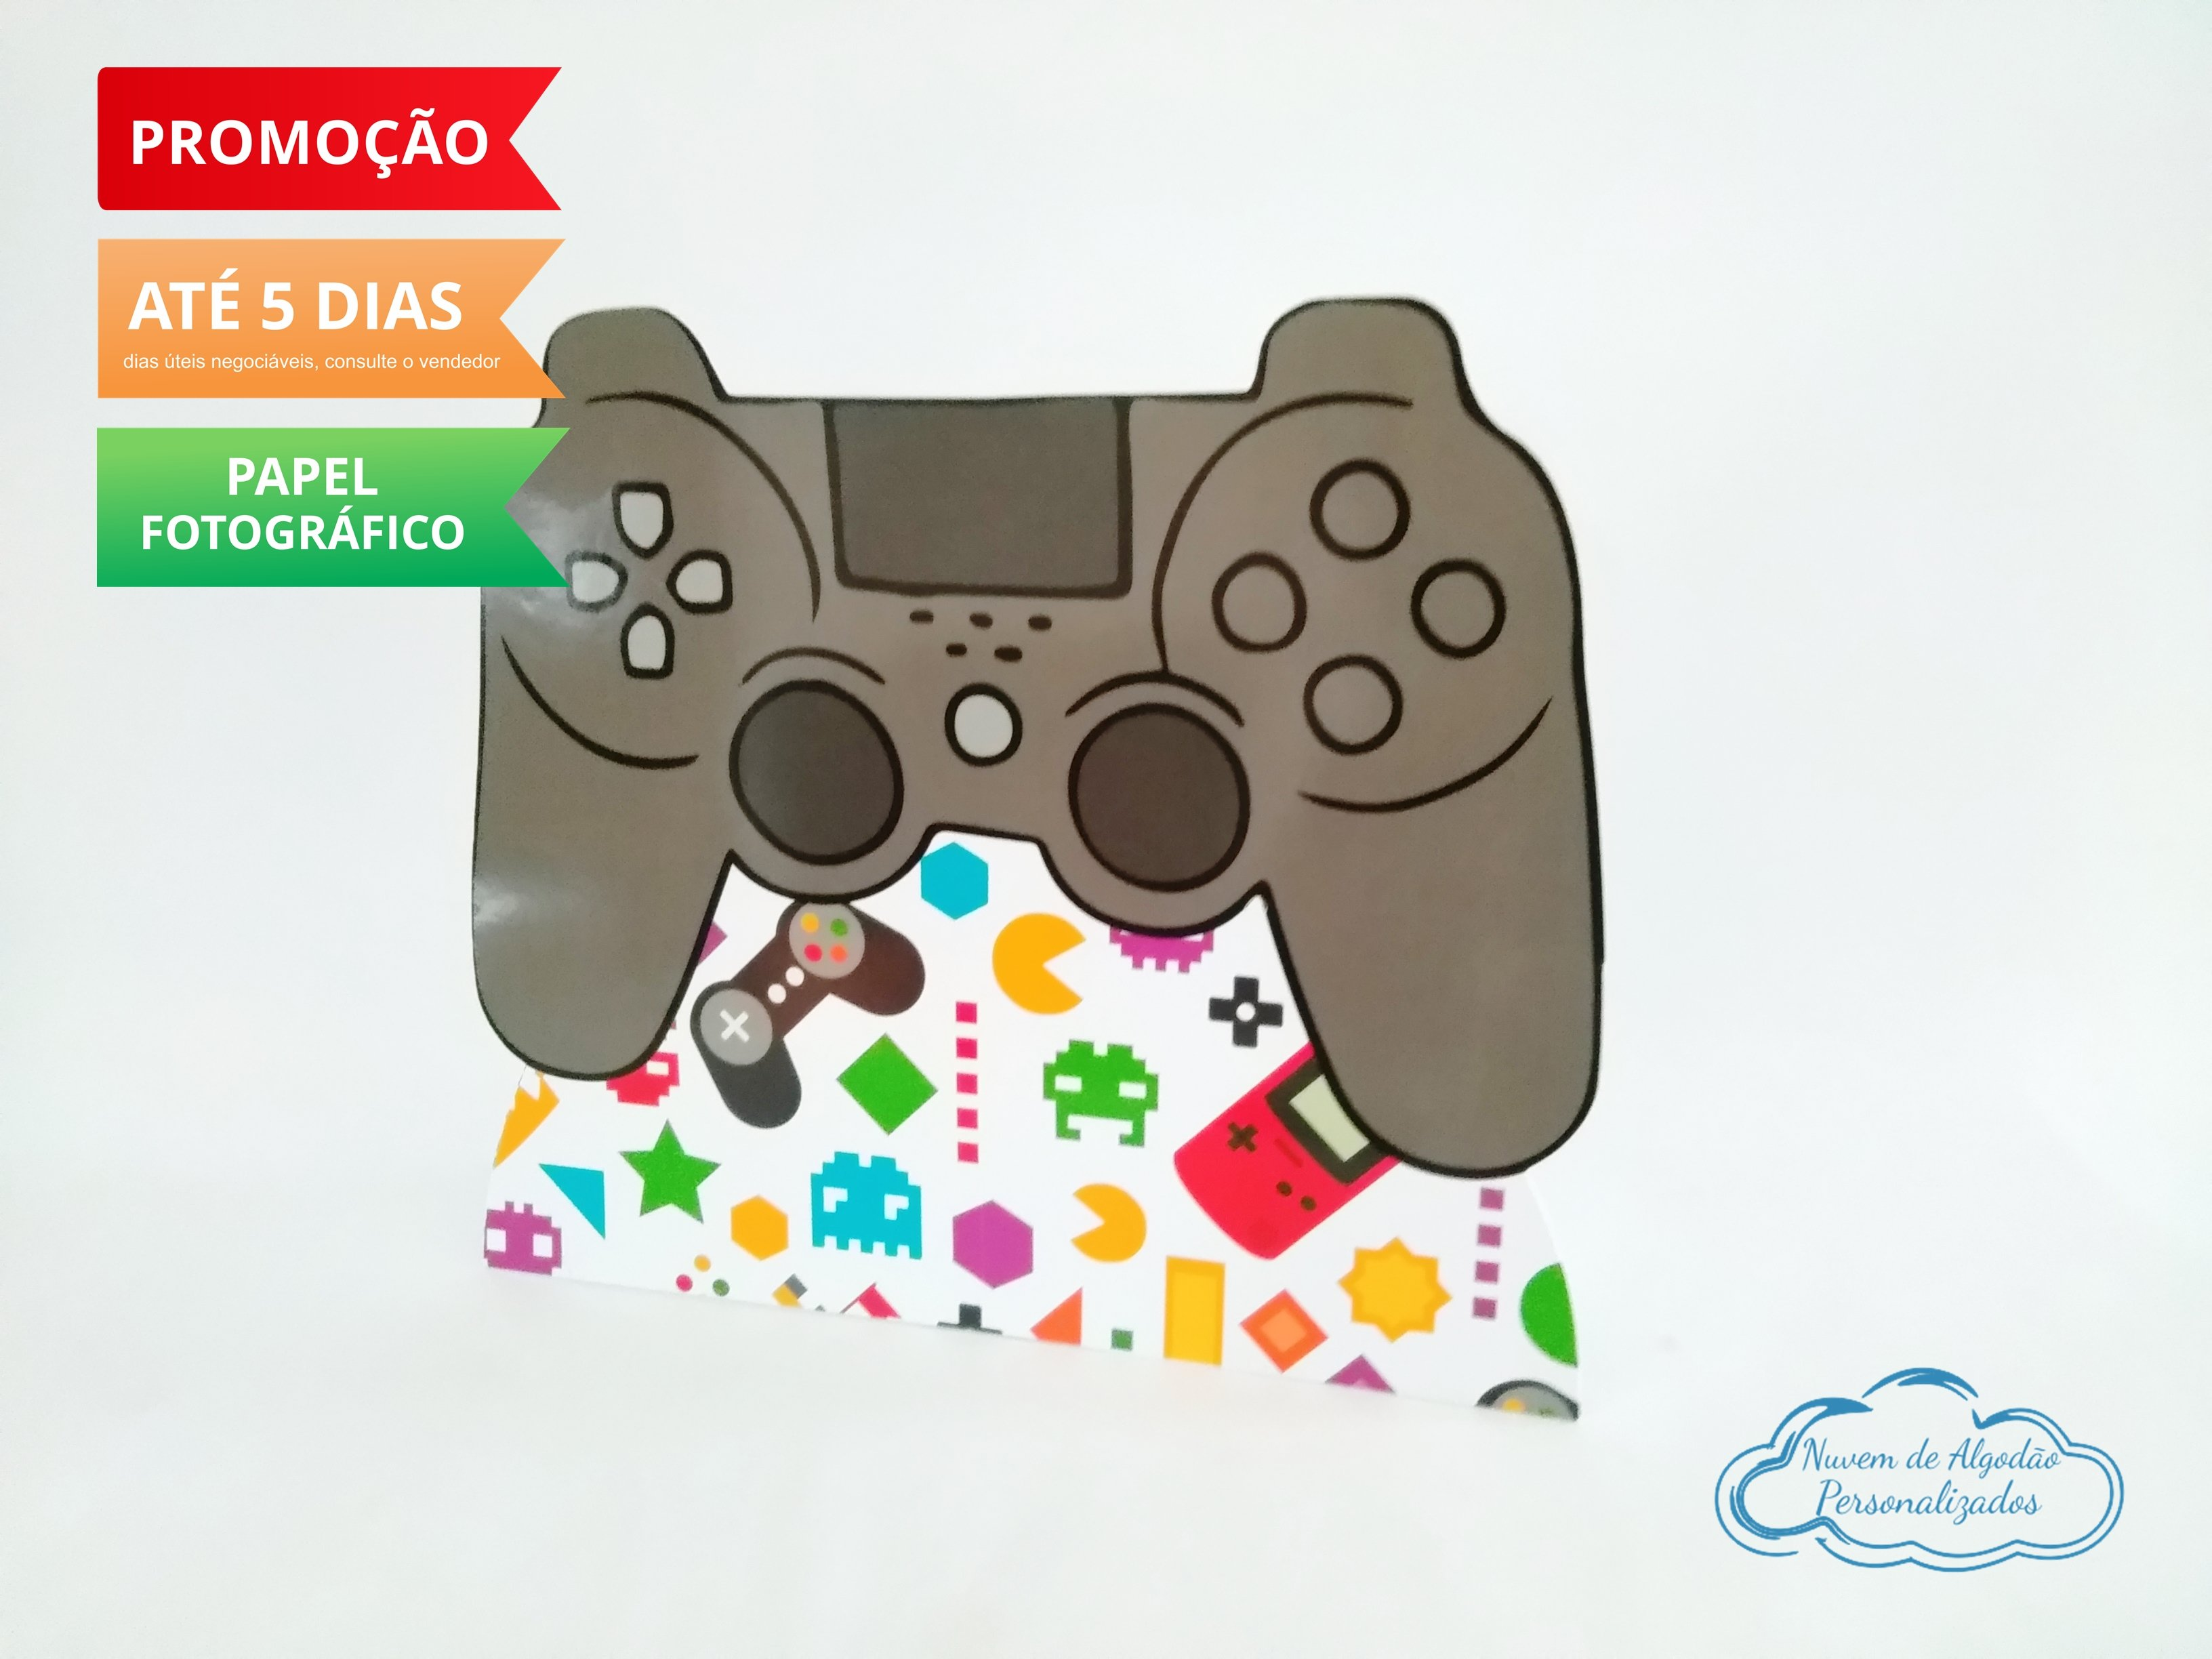 Nuvem de algodão personalizados - Display de mesa Video Game 27cm - joystick